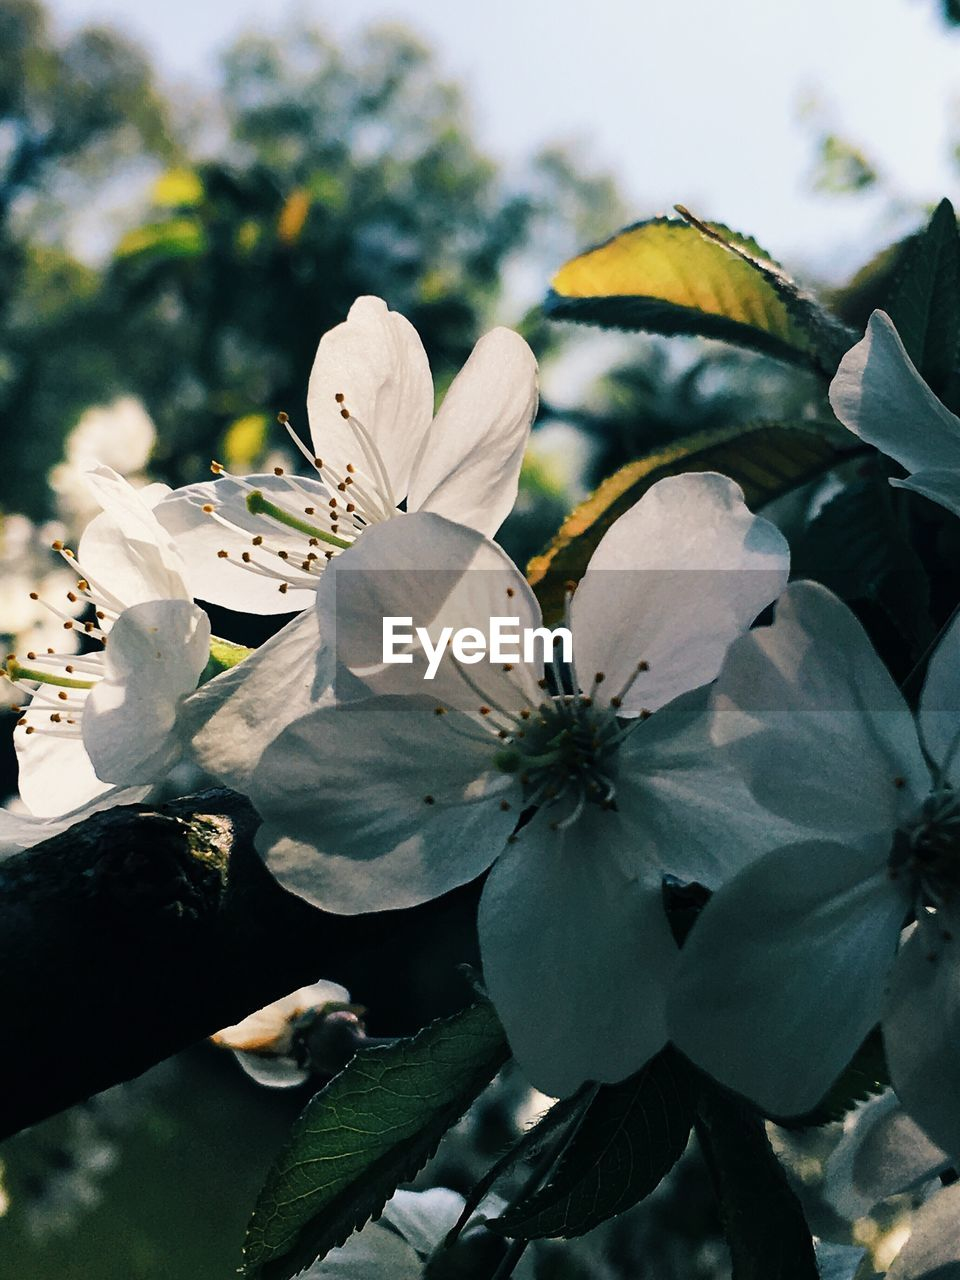 flower, growth, beauty in nature, fragility, white color, petal, freshness, nature, tree, blossom, botany, no people, flower head, close-up, day, leaf, outdoors, branch, stamen, springtime, low angle view, blooming, sky